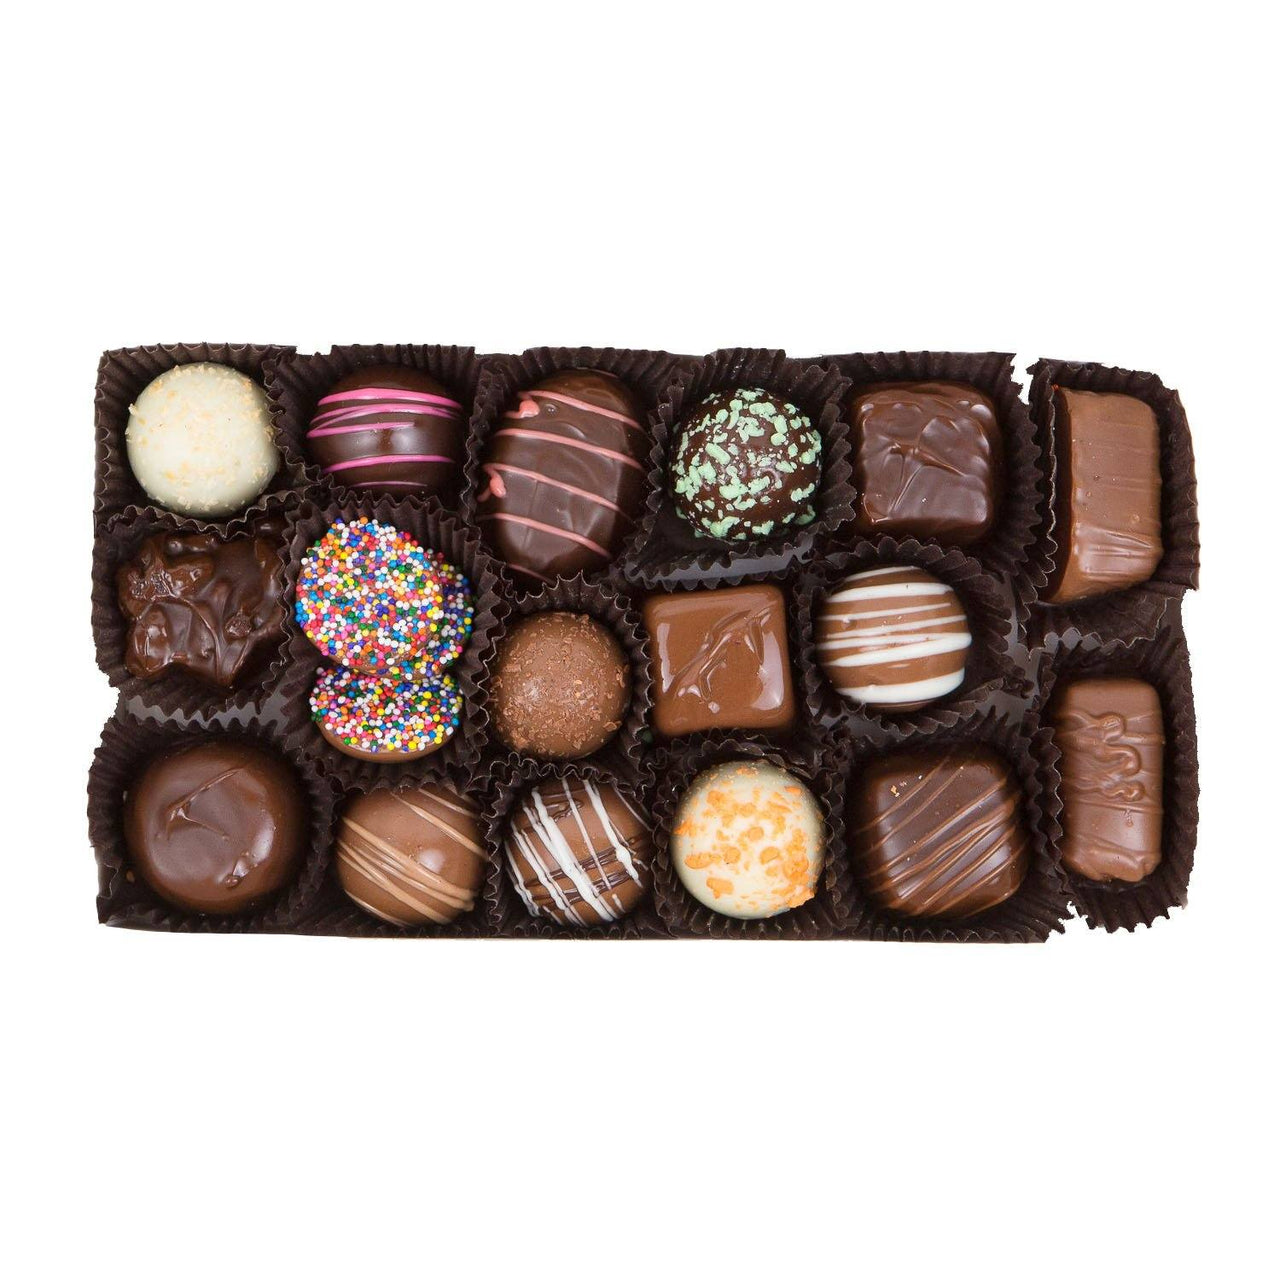 Gifts for Any Occassion - Assorted Chocolate Gift Box - Jackie's Chocolate (1487148580899)